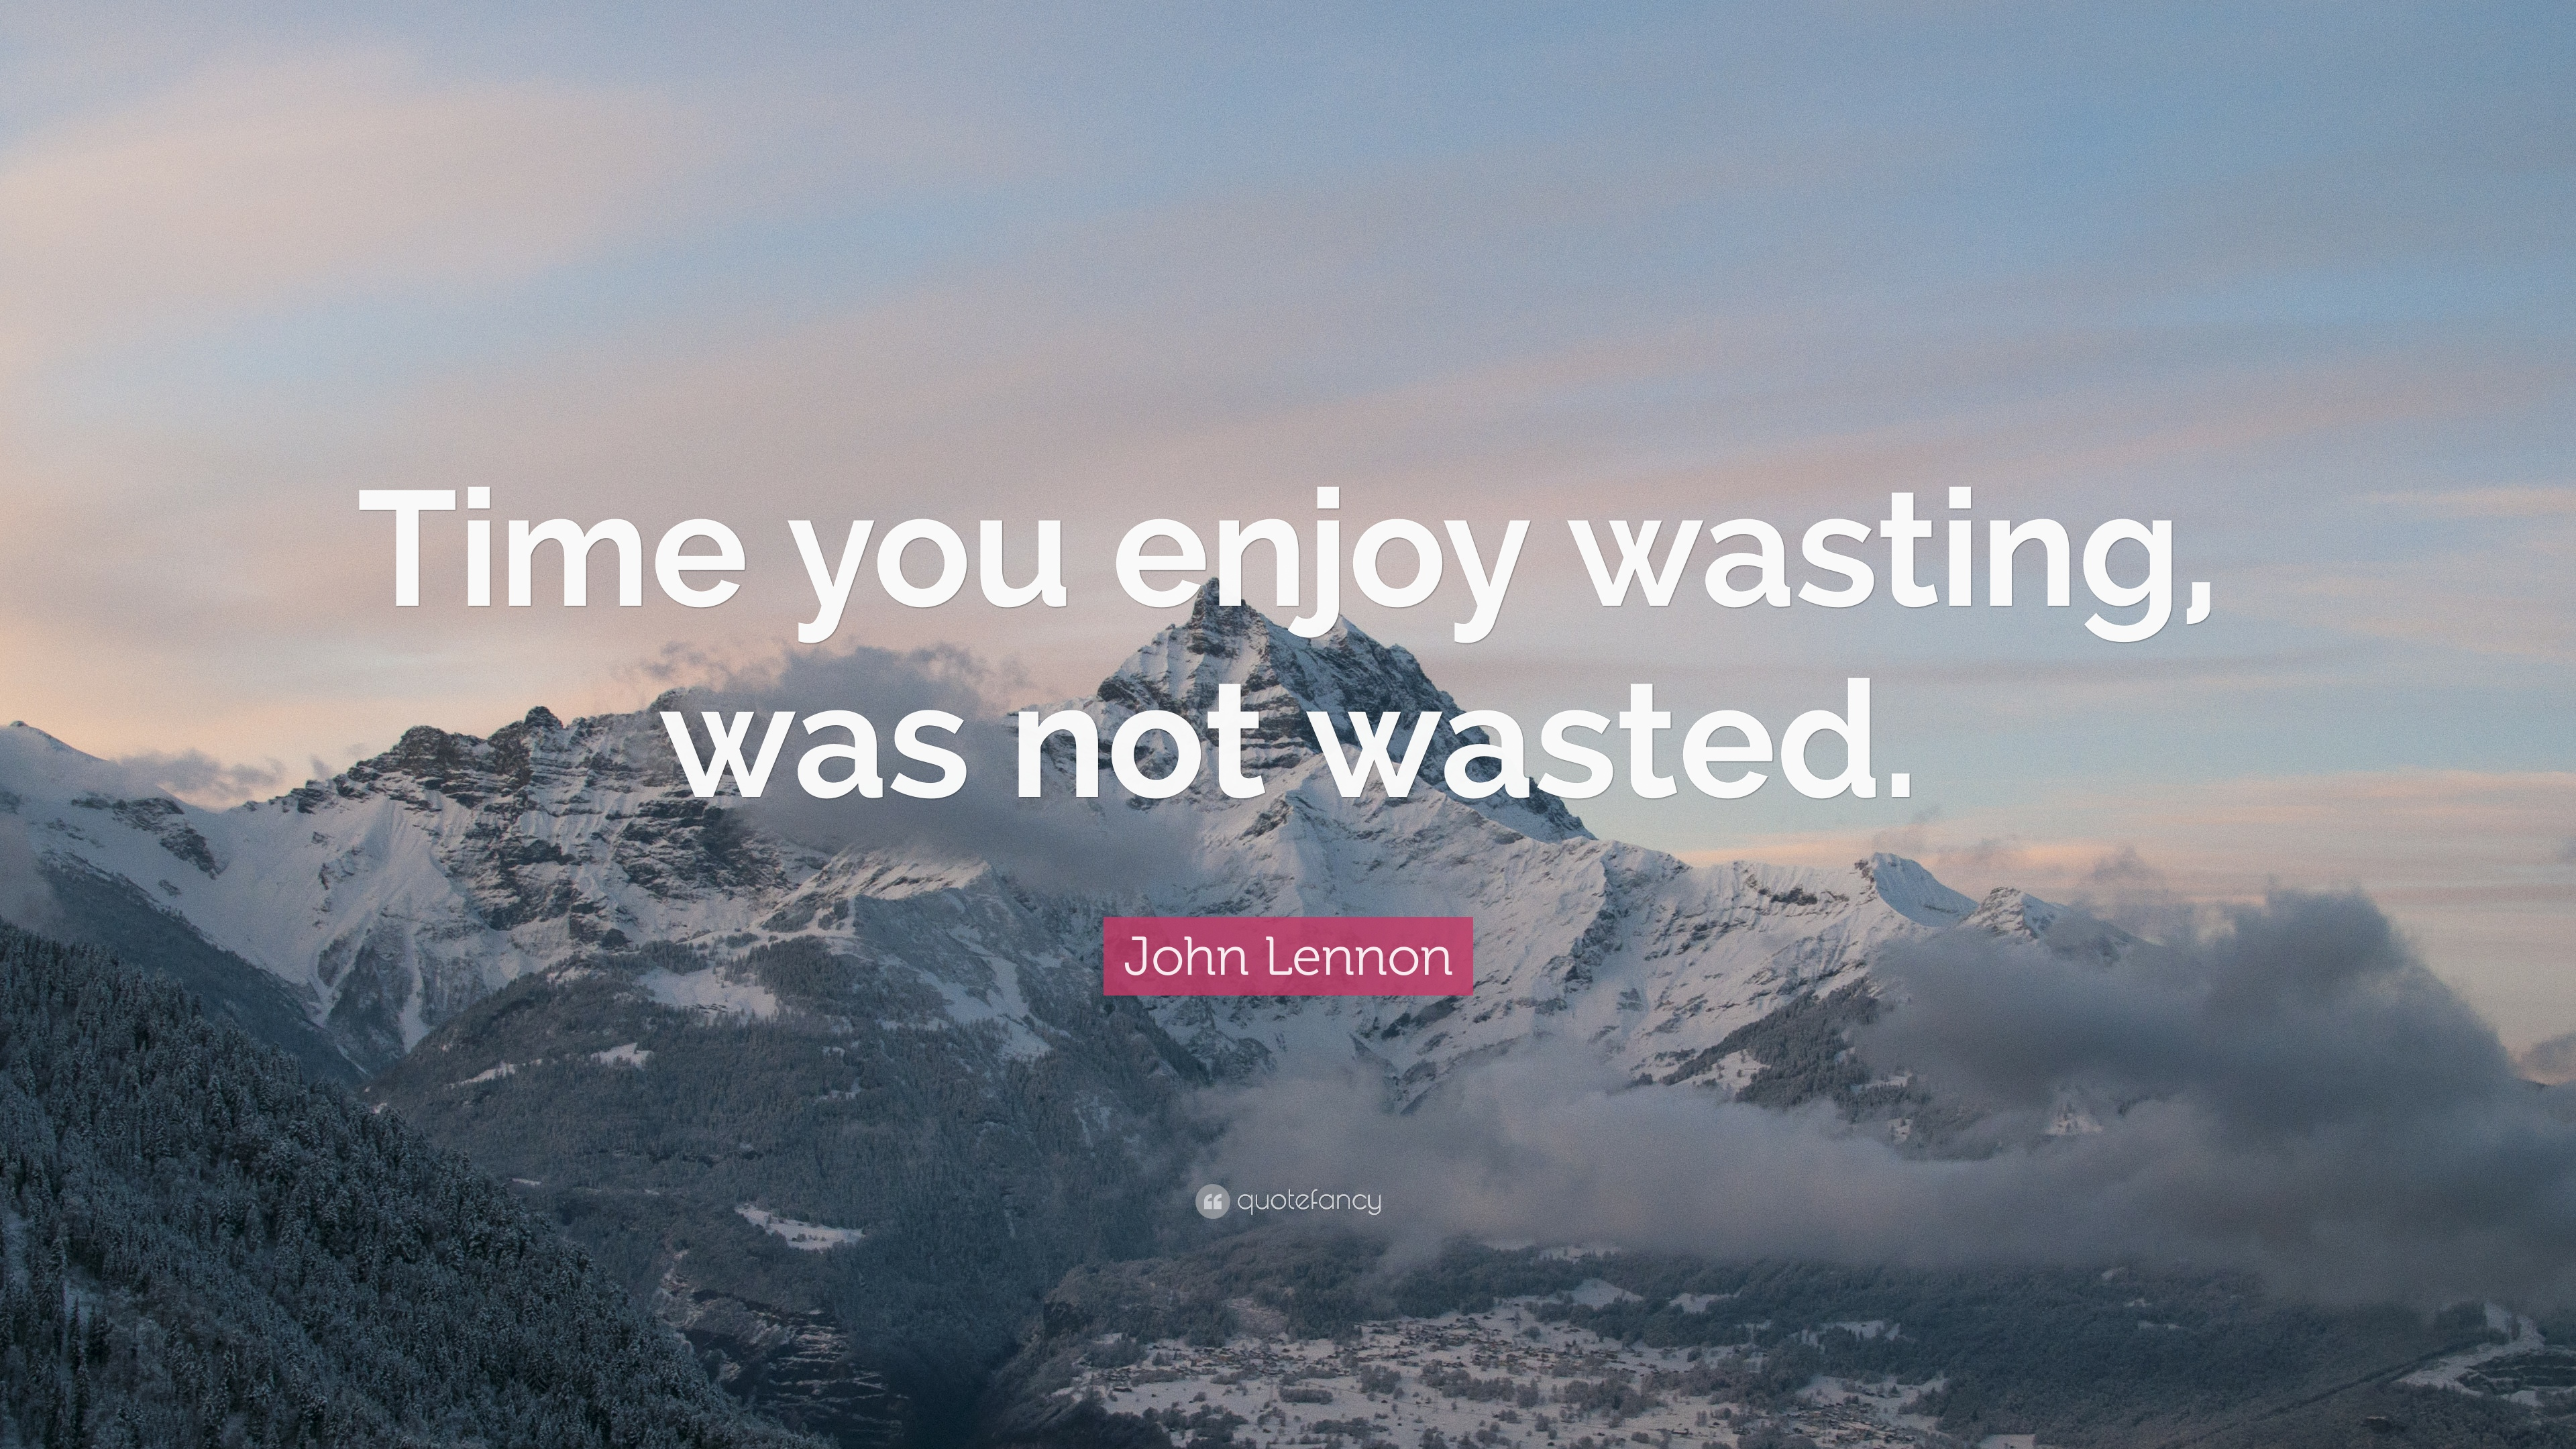 john lennon quote time you enjoy wasting was not wasted 19 john lennon quote time you enjoy wasting was not wasted